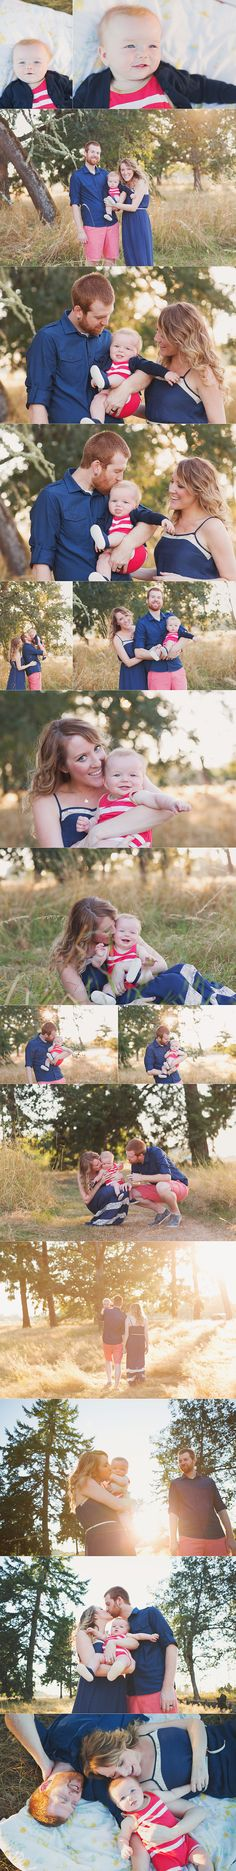 6 months together | Covington family photographer » Kristal Joy Photography